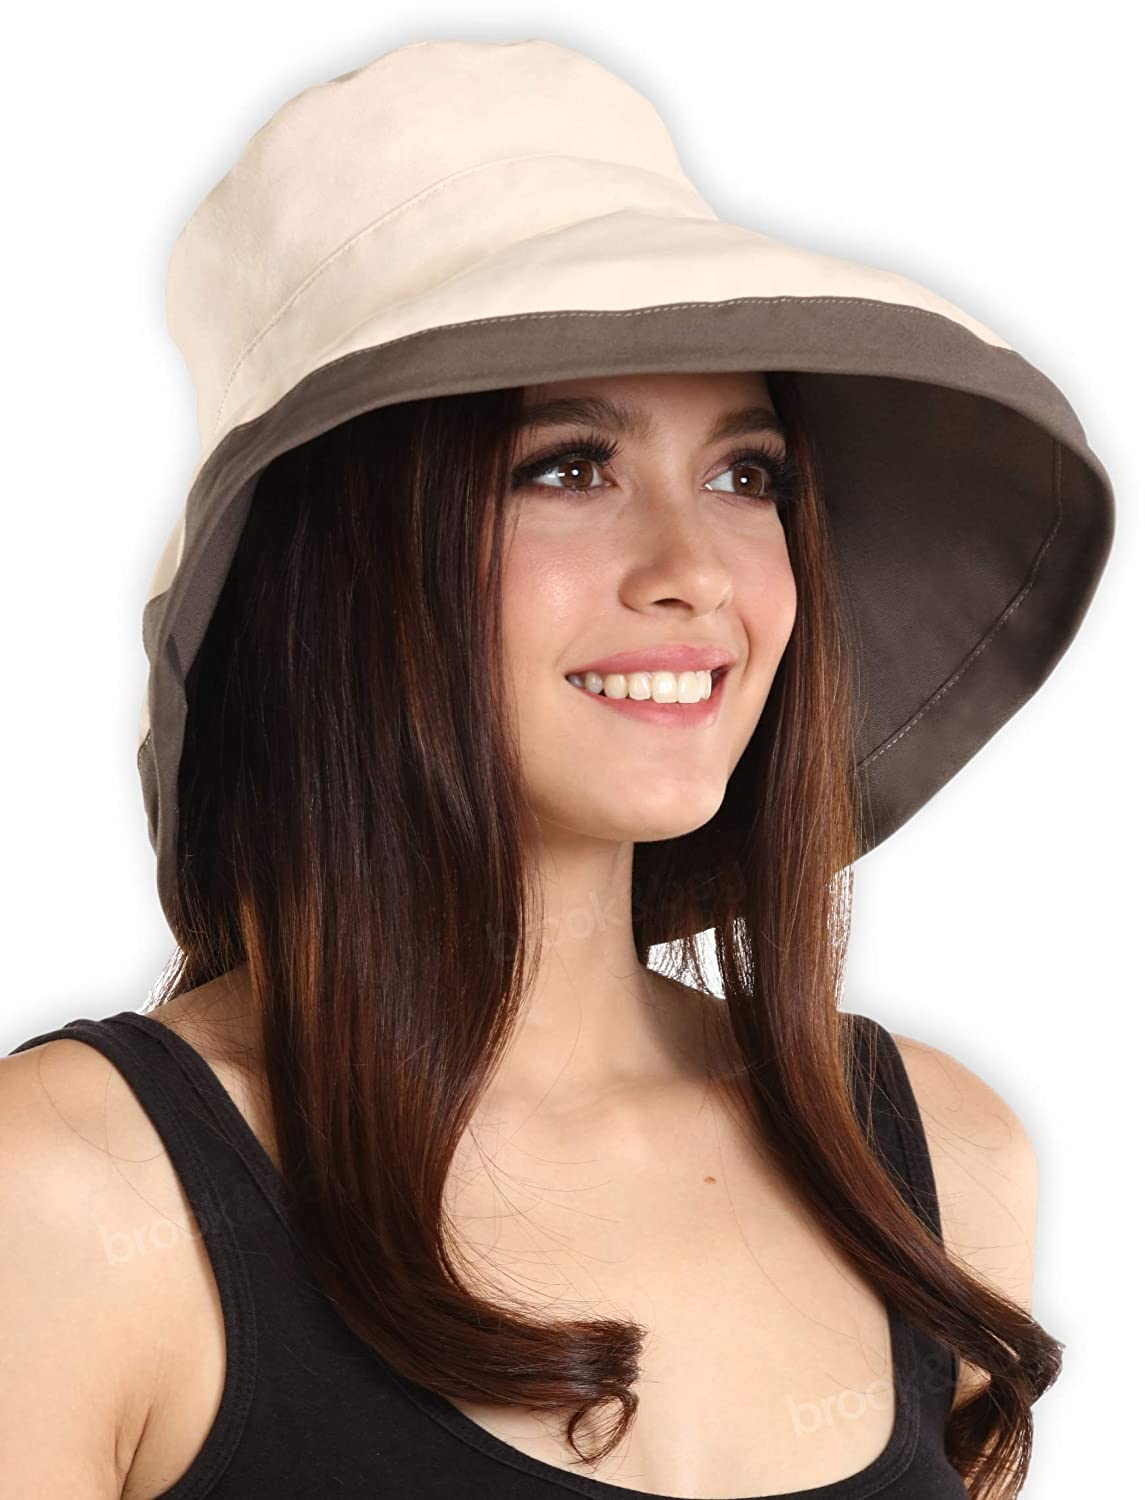 e7e94d9e3 Sun Hat for Women - Safari Hat with UV Protection - Ideal for Hiking,  Gardening, Beach Travels, Pool, Boating, Fishing & Outdoor Adventures -  Packable ...